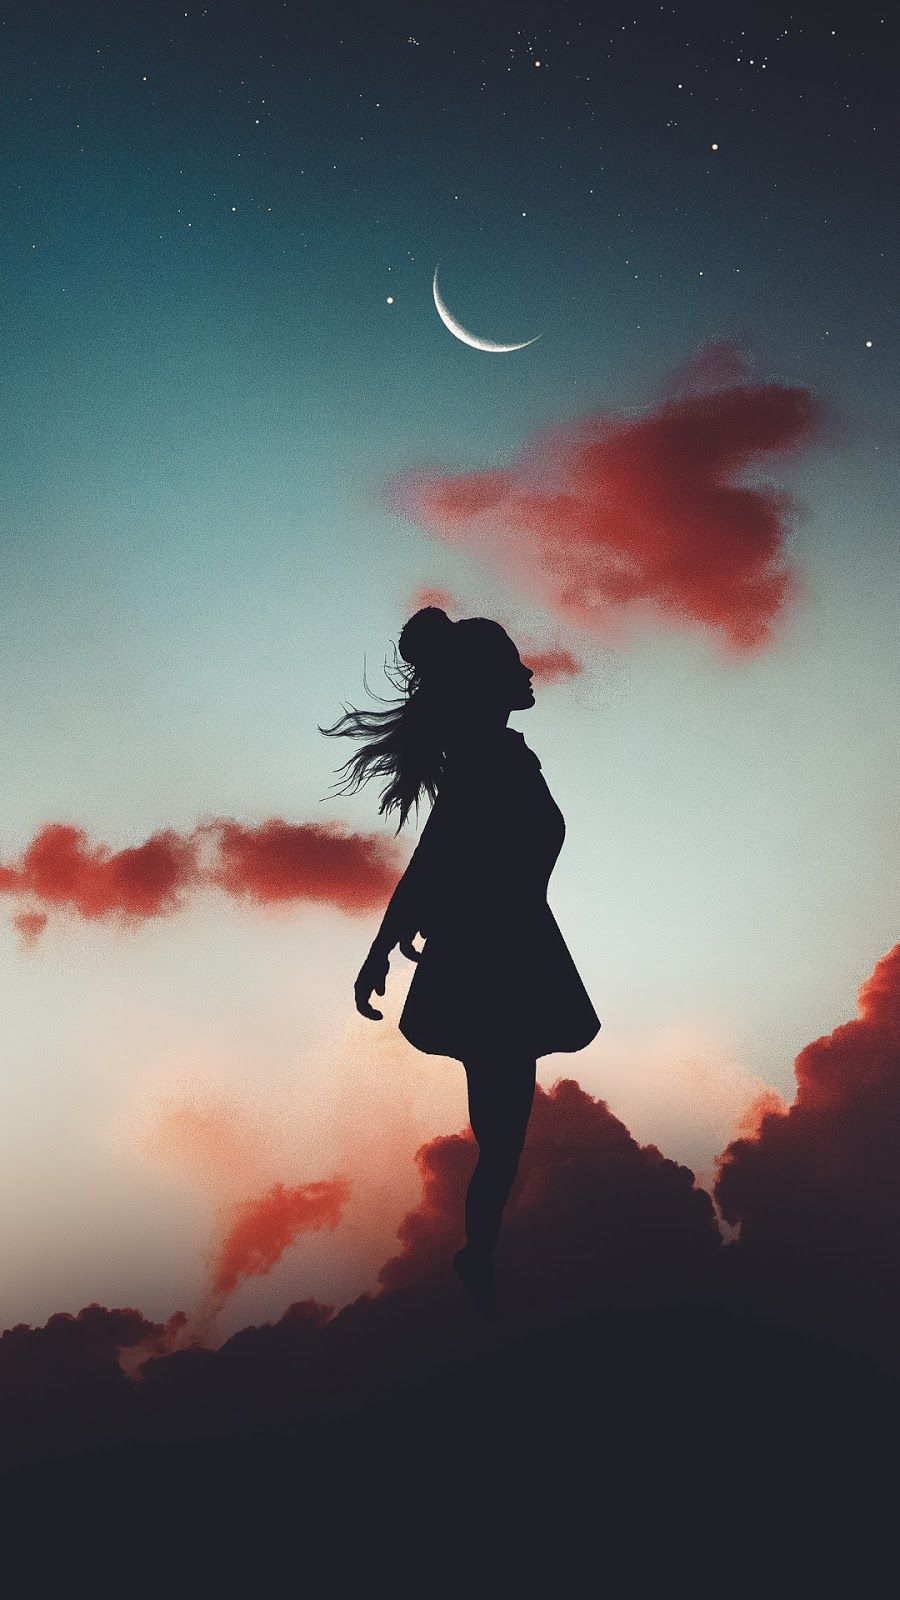 Levitate In The Sky Silhouette Photography Art Wallpaper Aesthetic Wallpapers